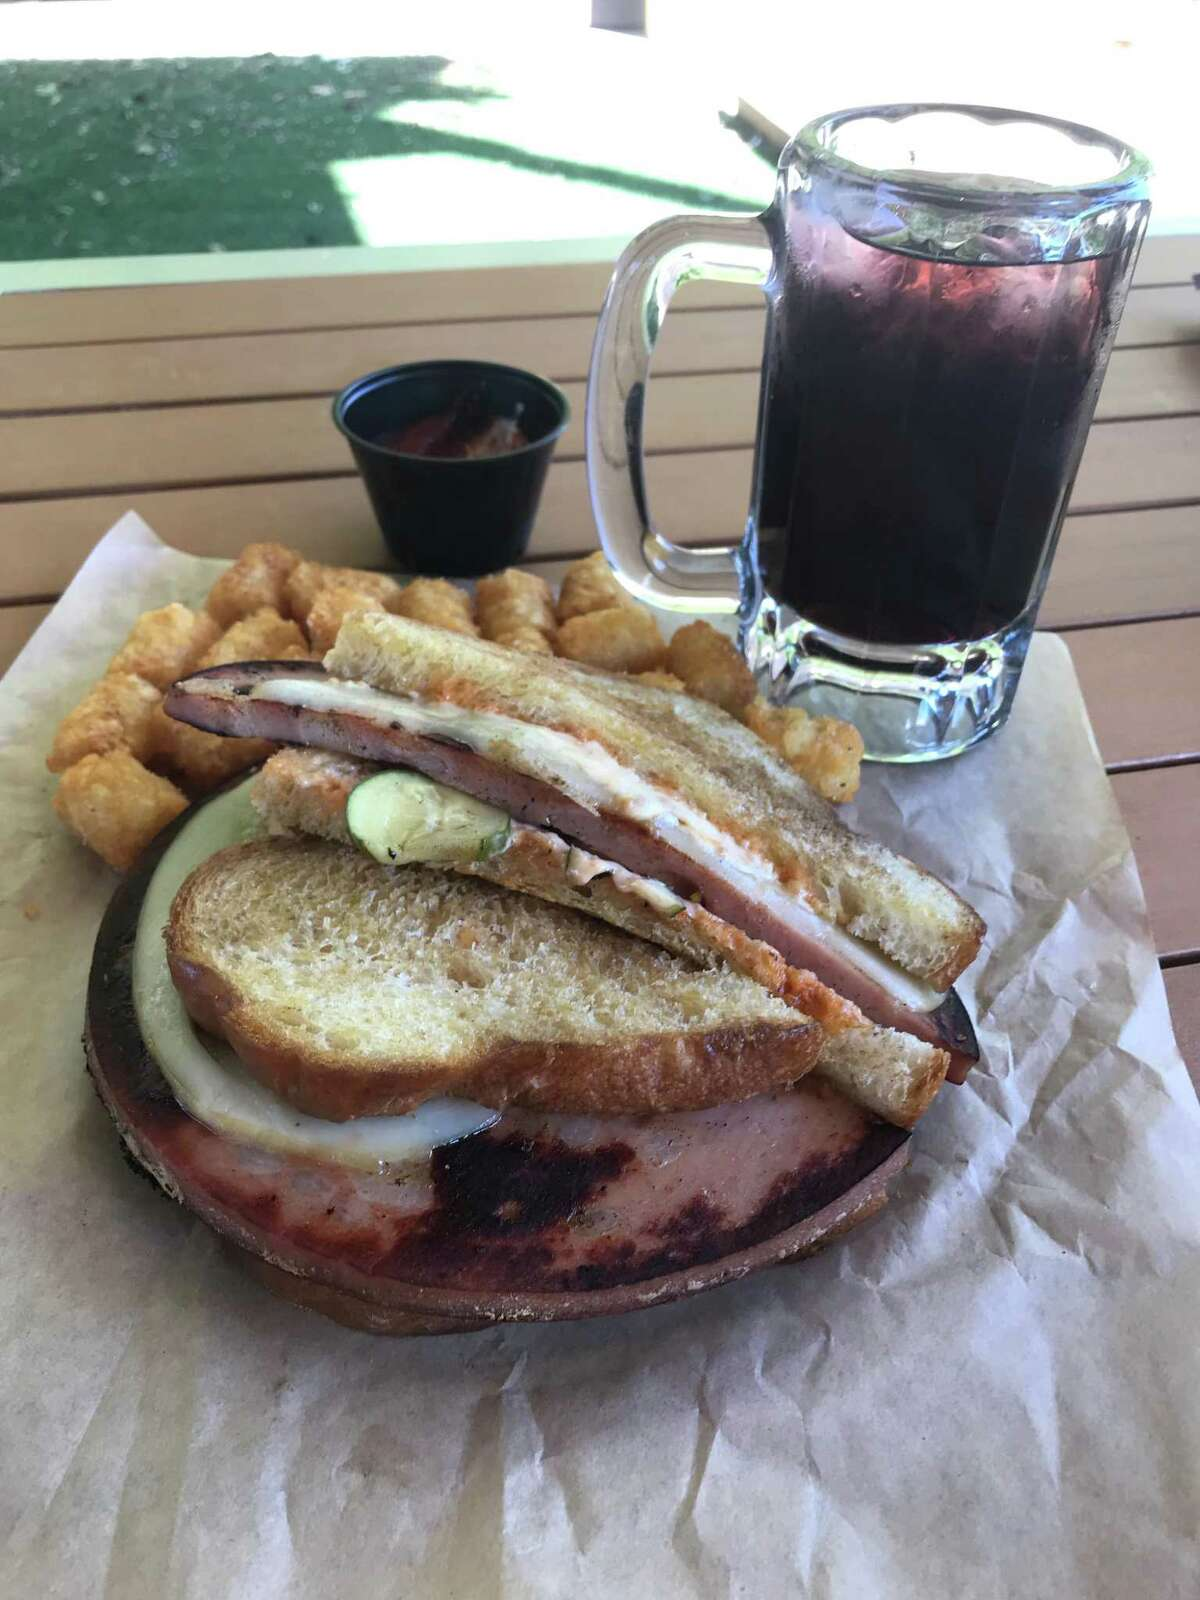 The Fried Mortadella Sandwich, spicy brown sugar tater tots and a Jones Grape Soda from Three Star Bar